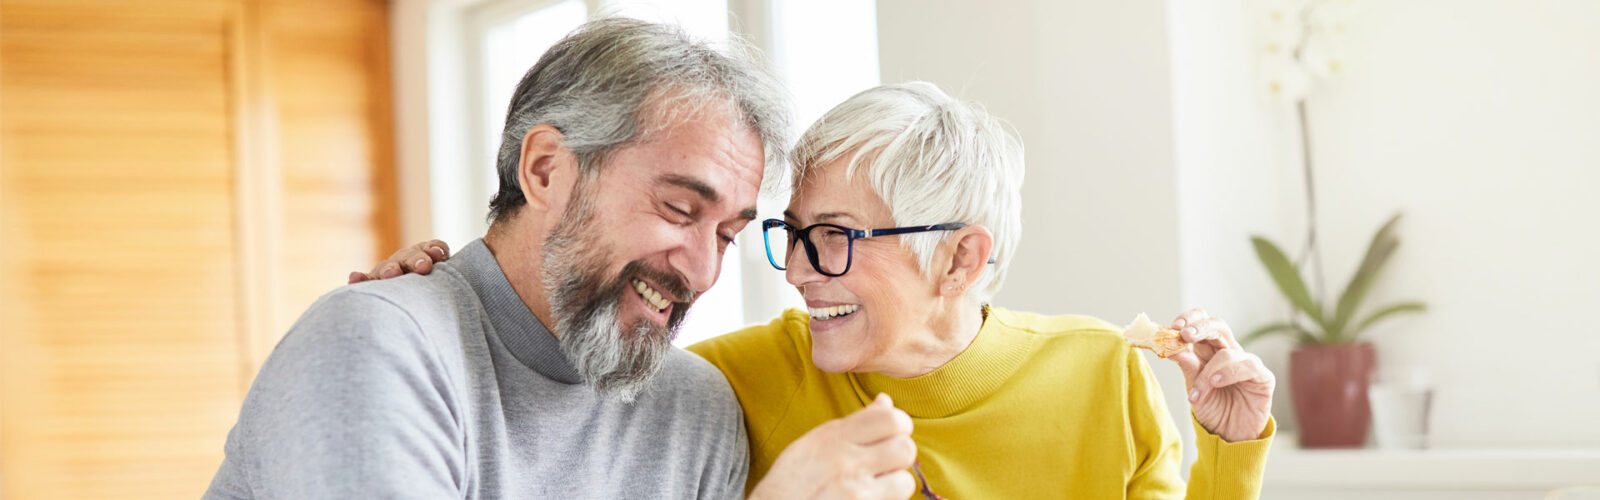 mid aged couple laughing